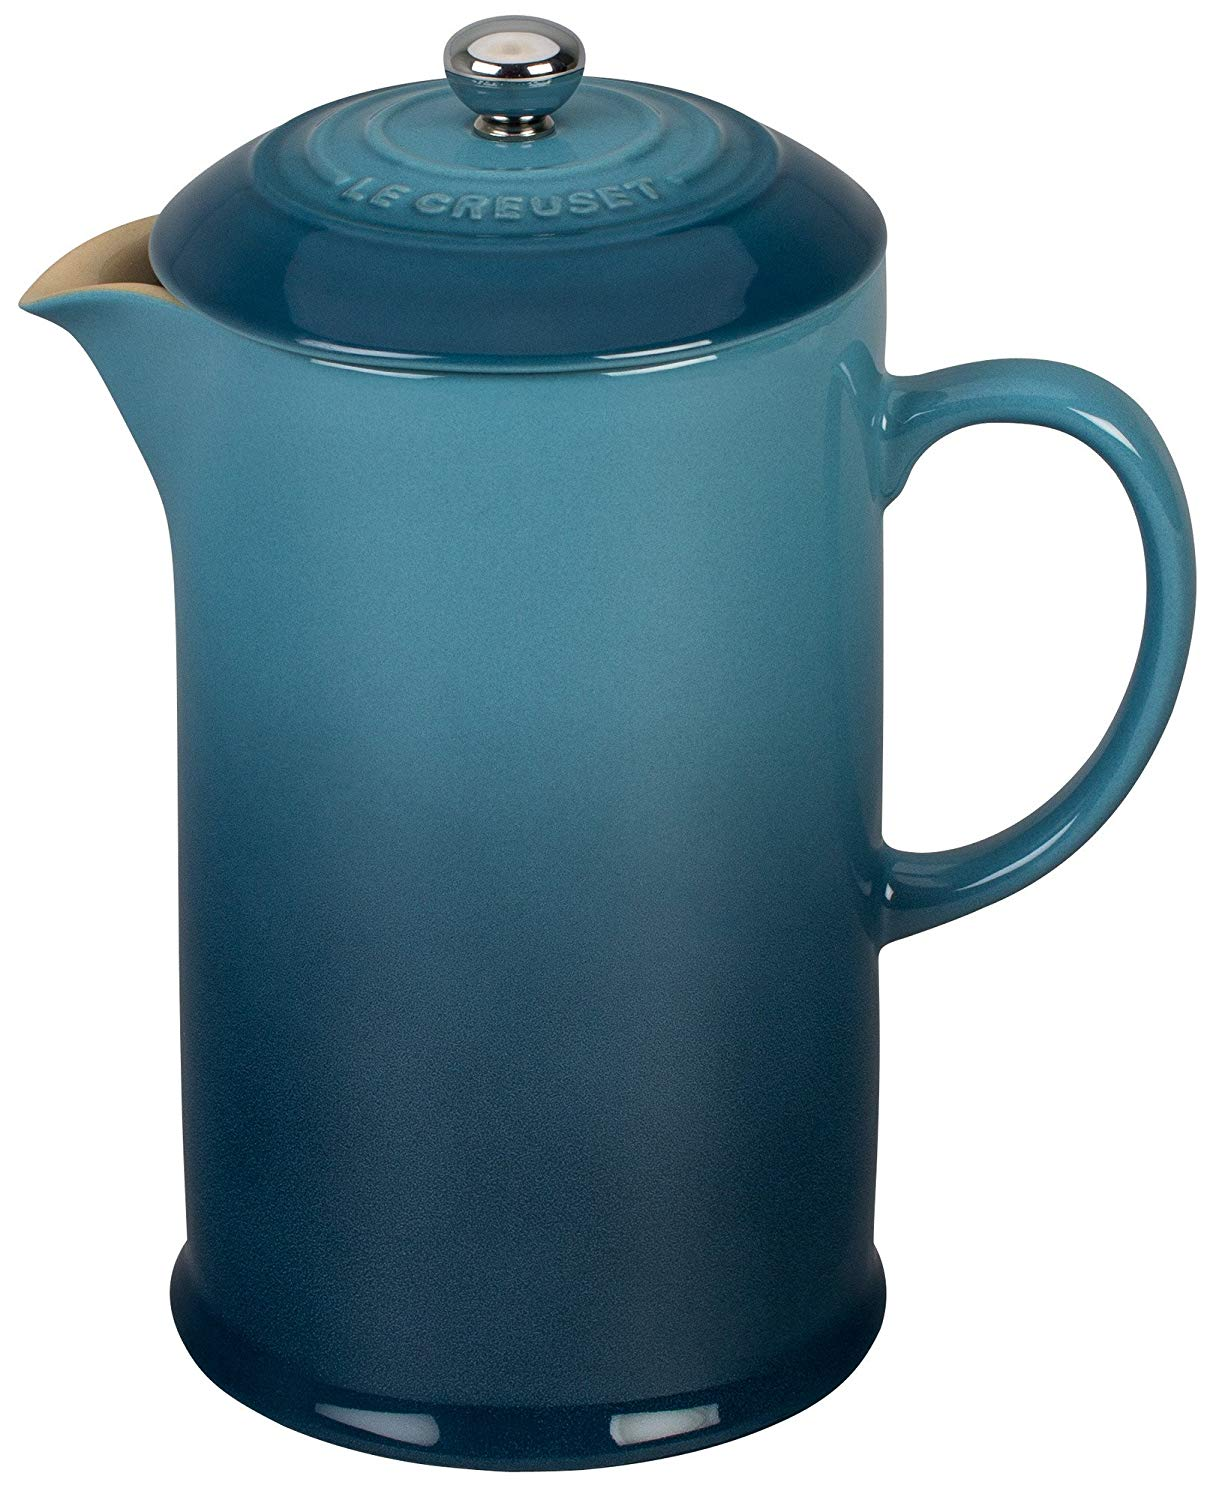 Best French press: Le Creuset